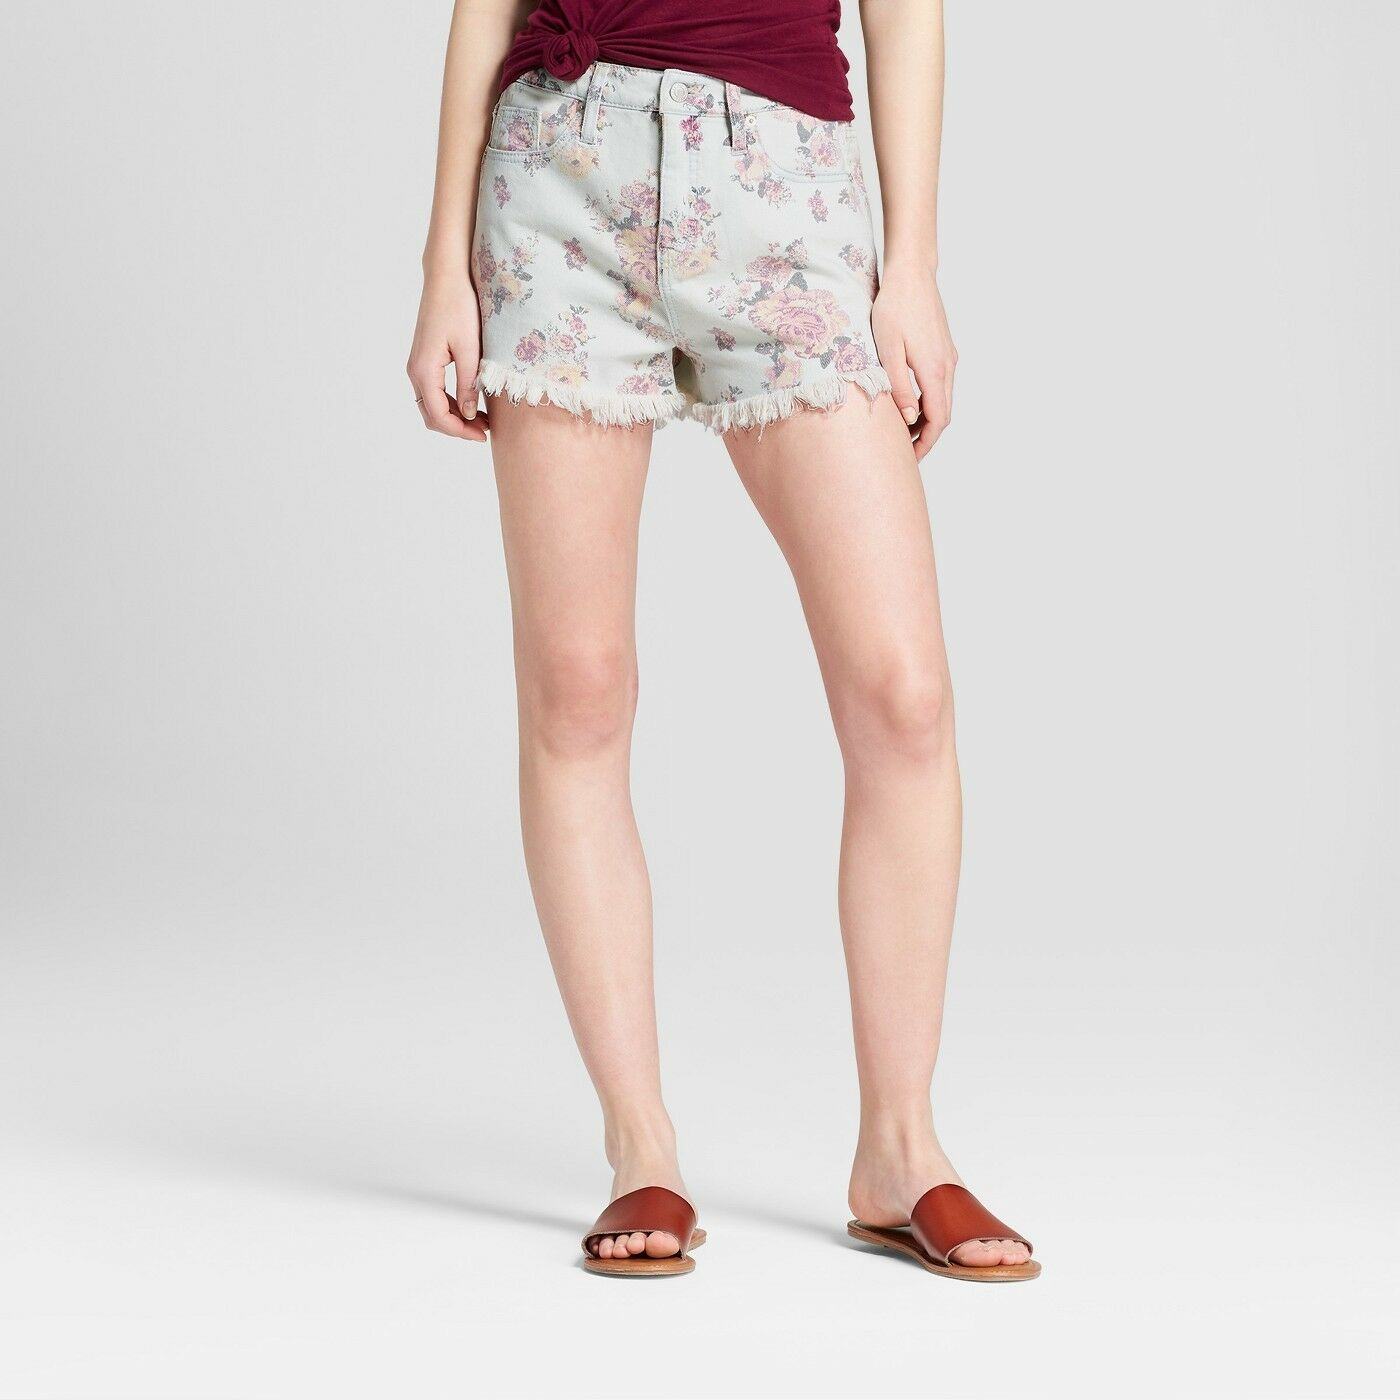 c08c056b69 Details about NWT Women s Floral Print High-Rise Jean Shorts - Mossimo  Supply Co. Light Cream